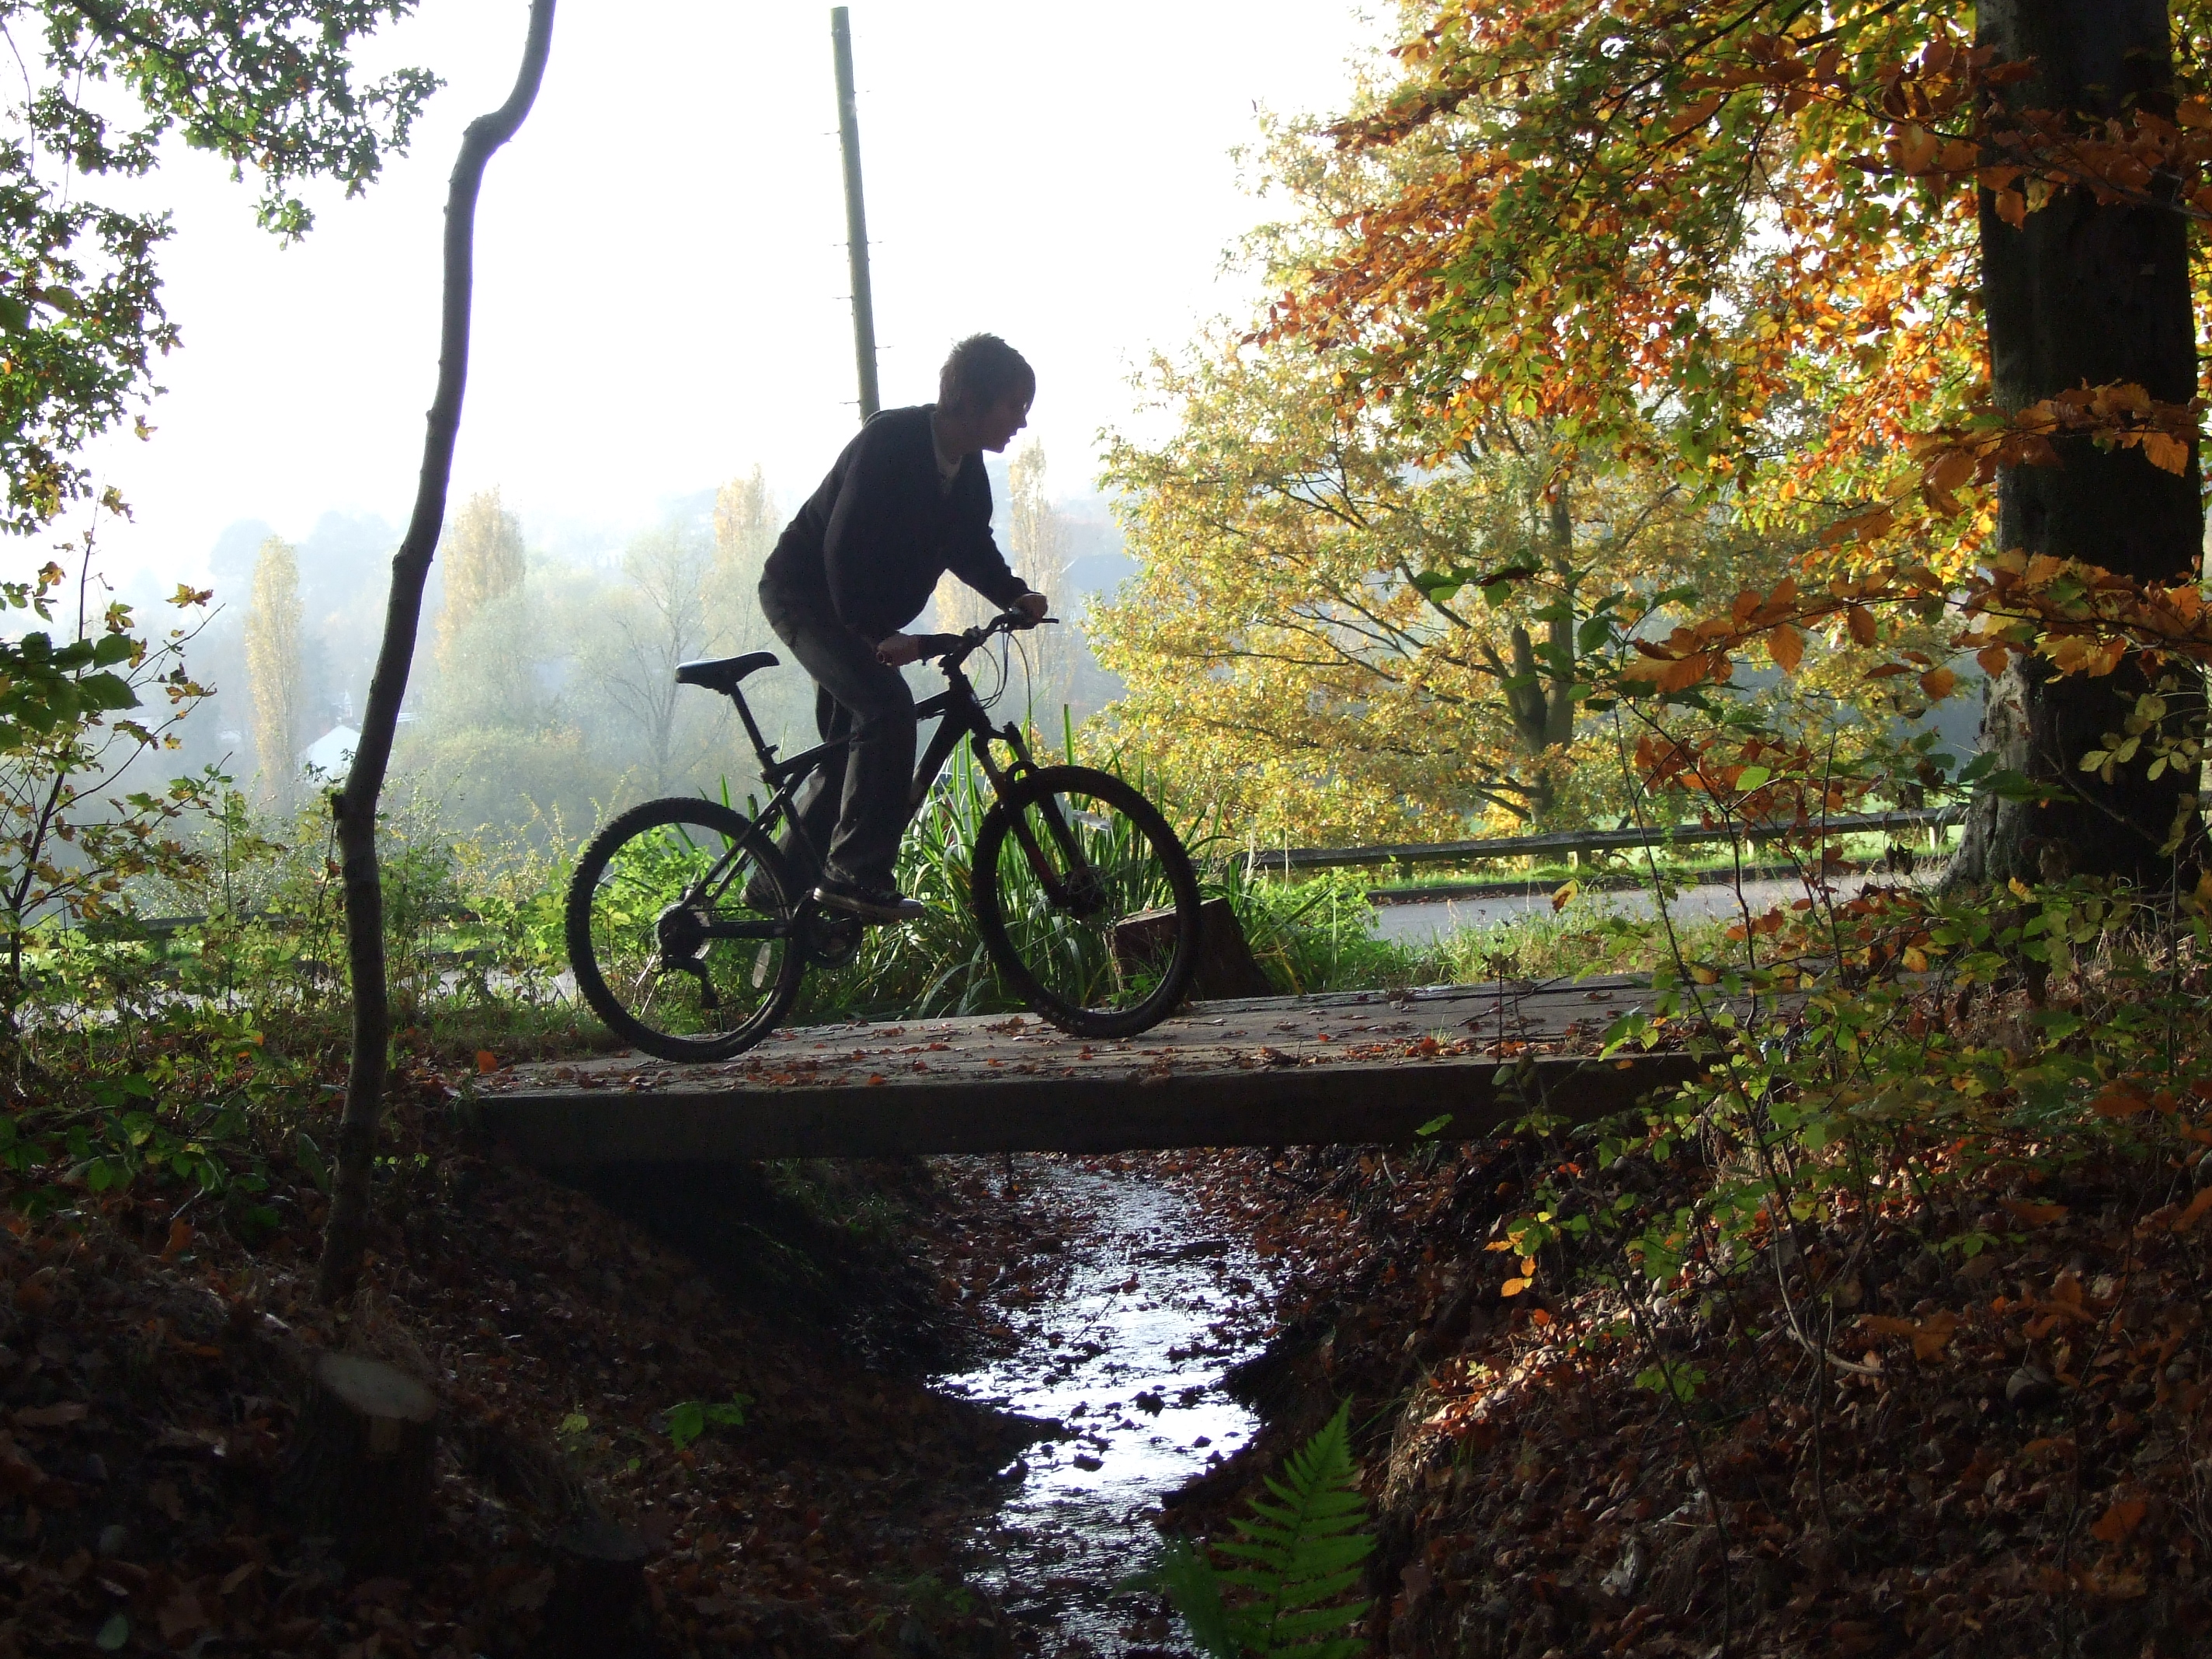 Cycling through the forest, Bike, Boy, Bridge, Cycling, HQ Photo